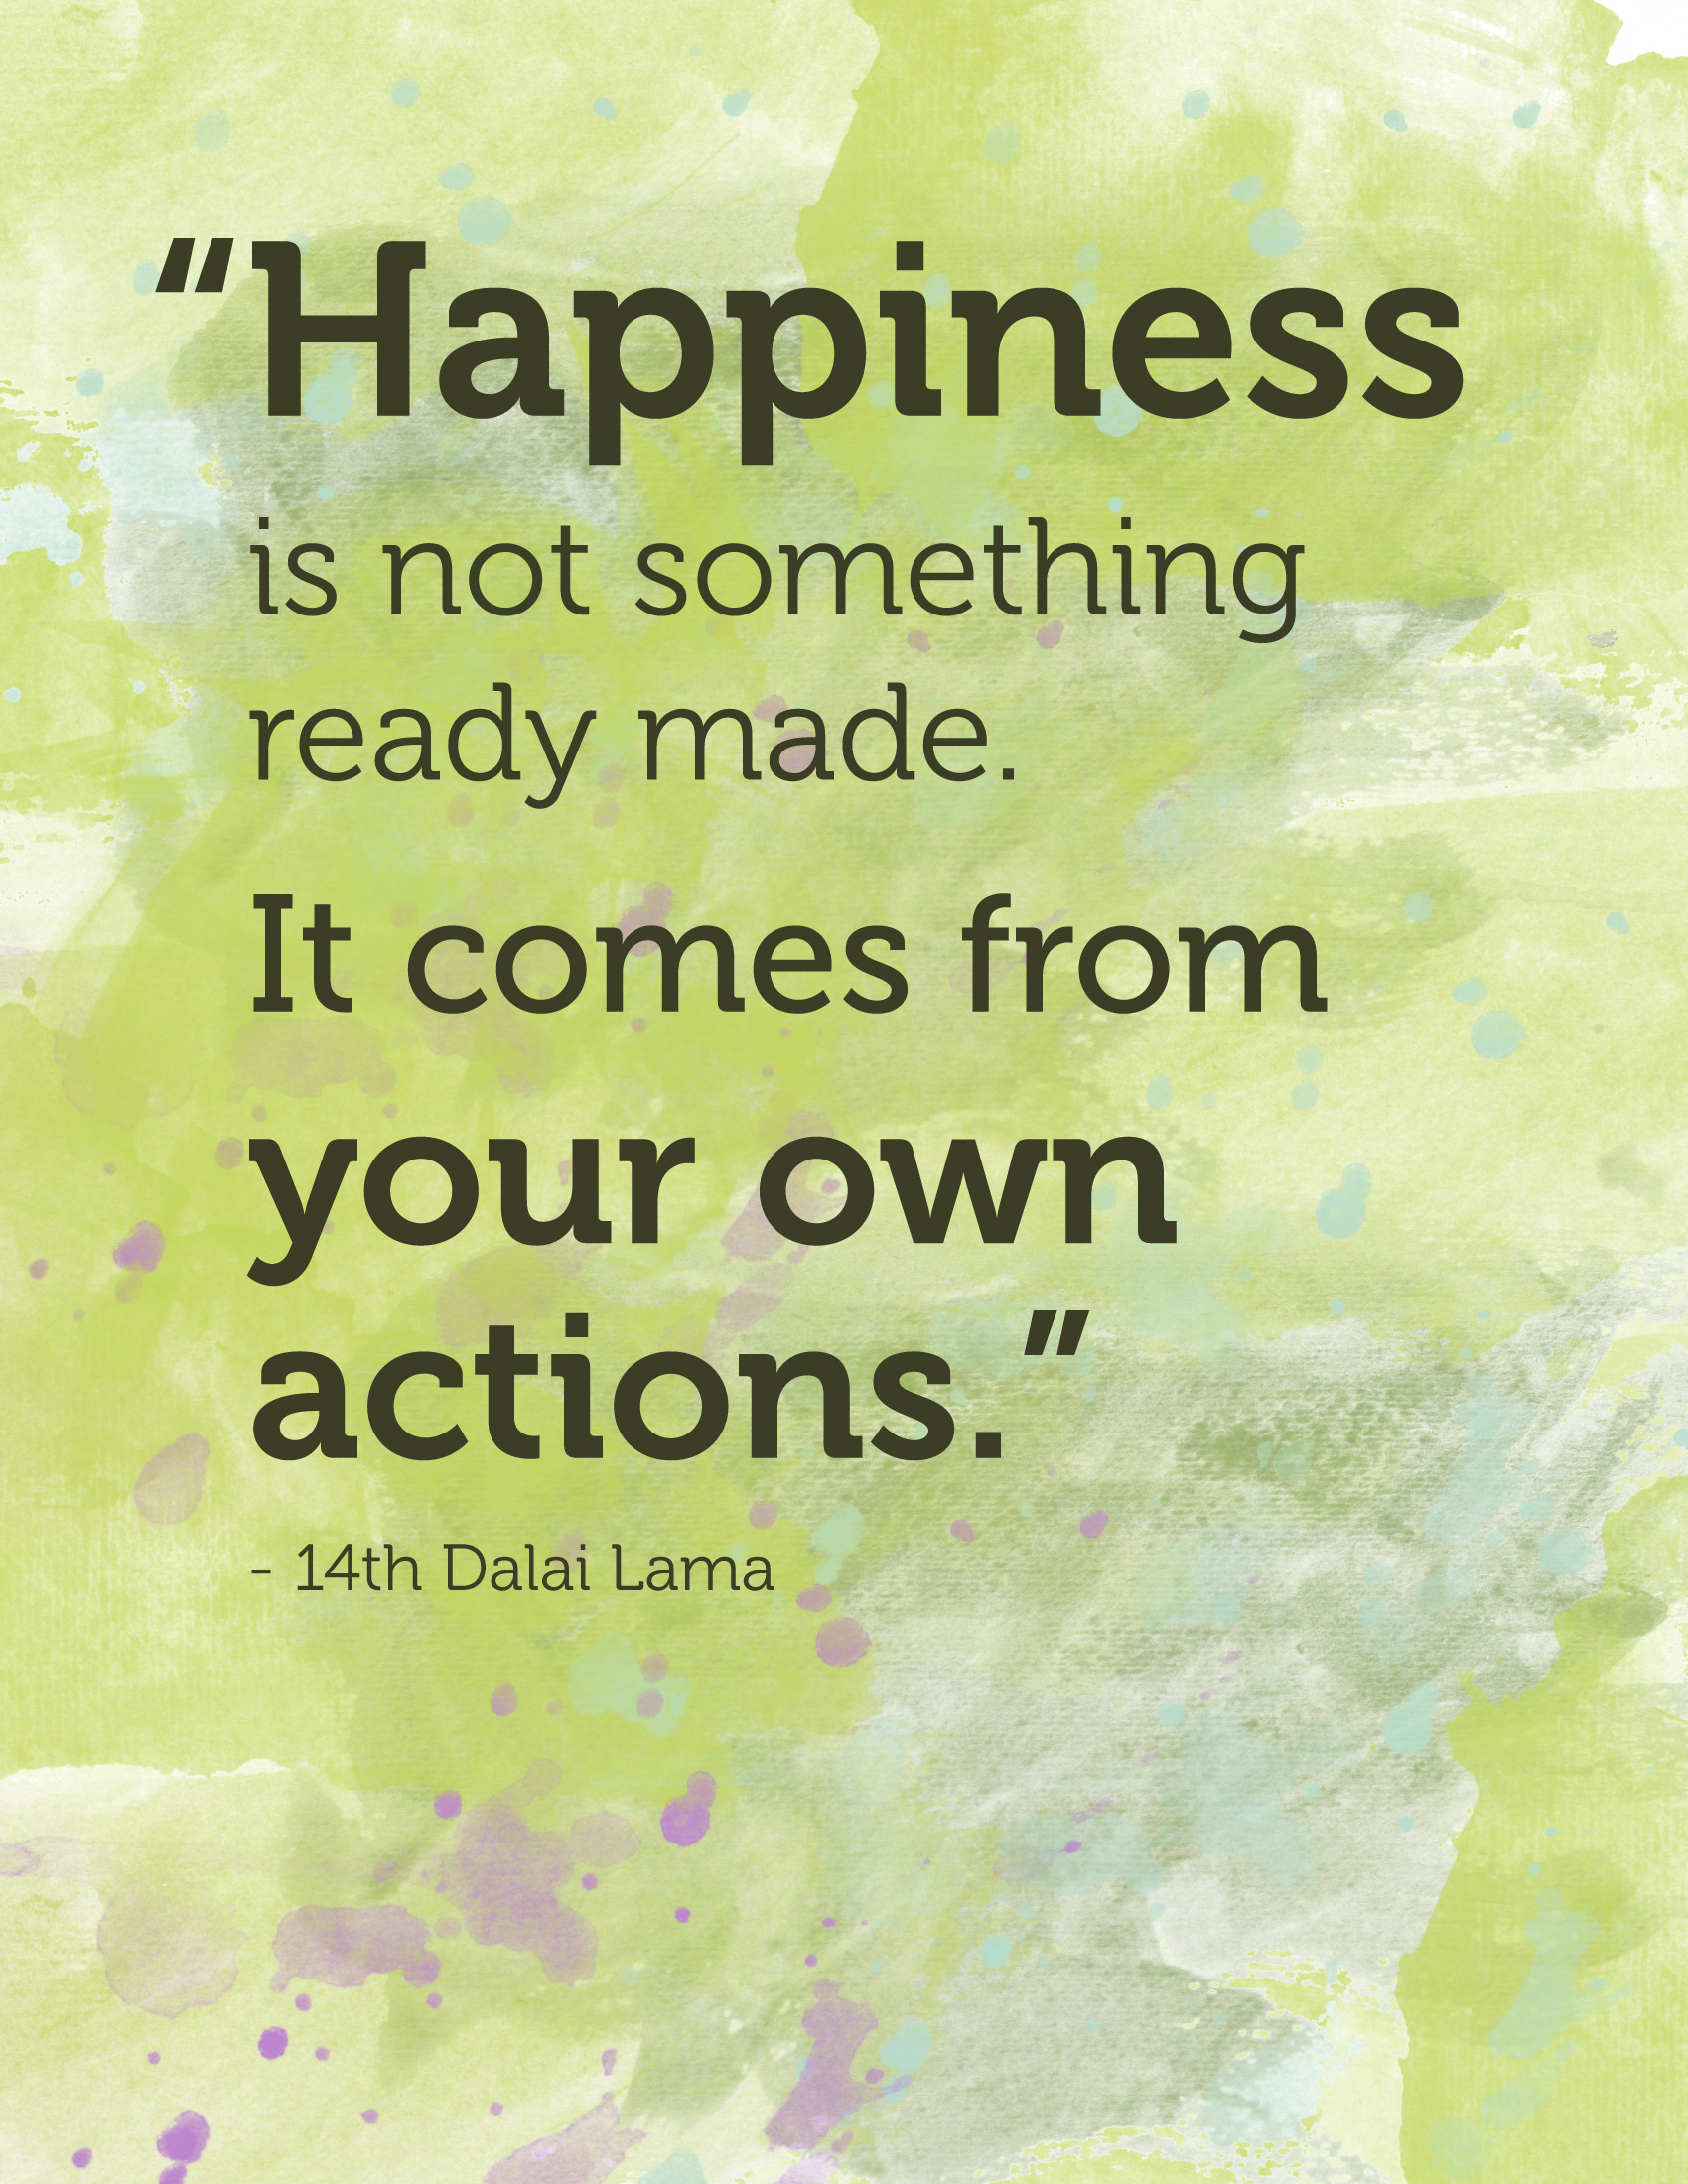 Dalai Lama Quotes On Happiness. QuotesGram